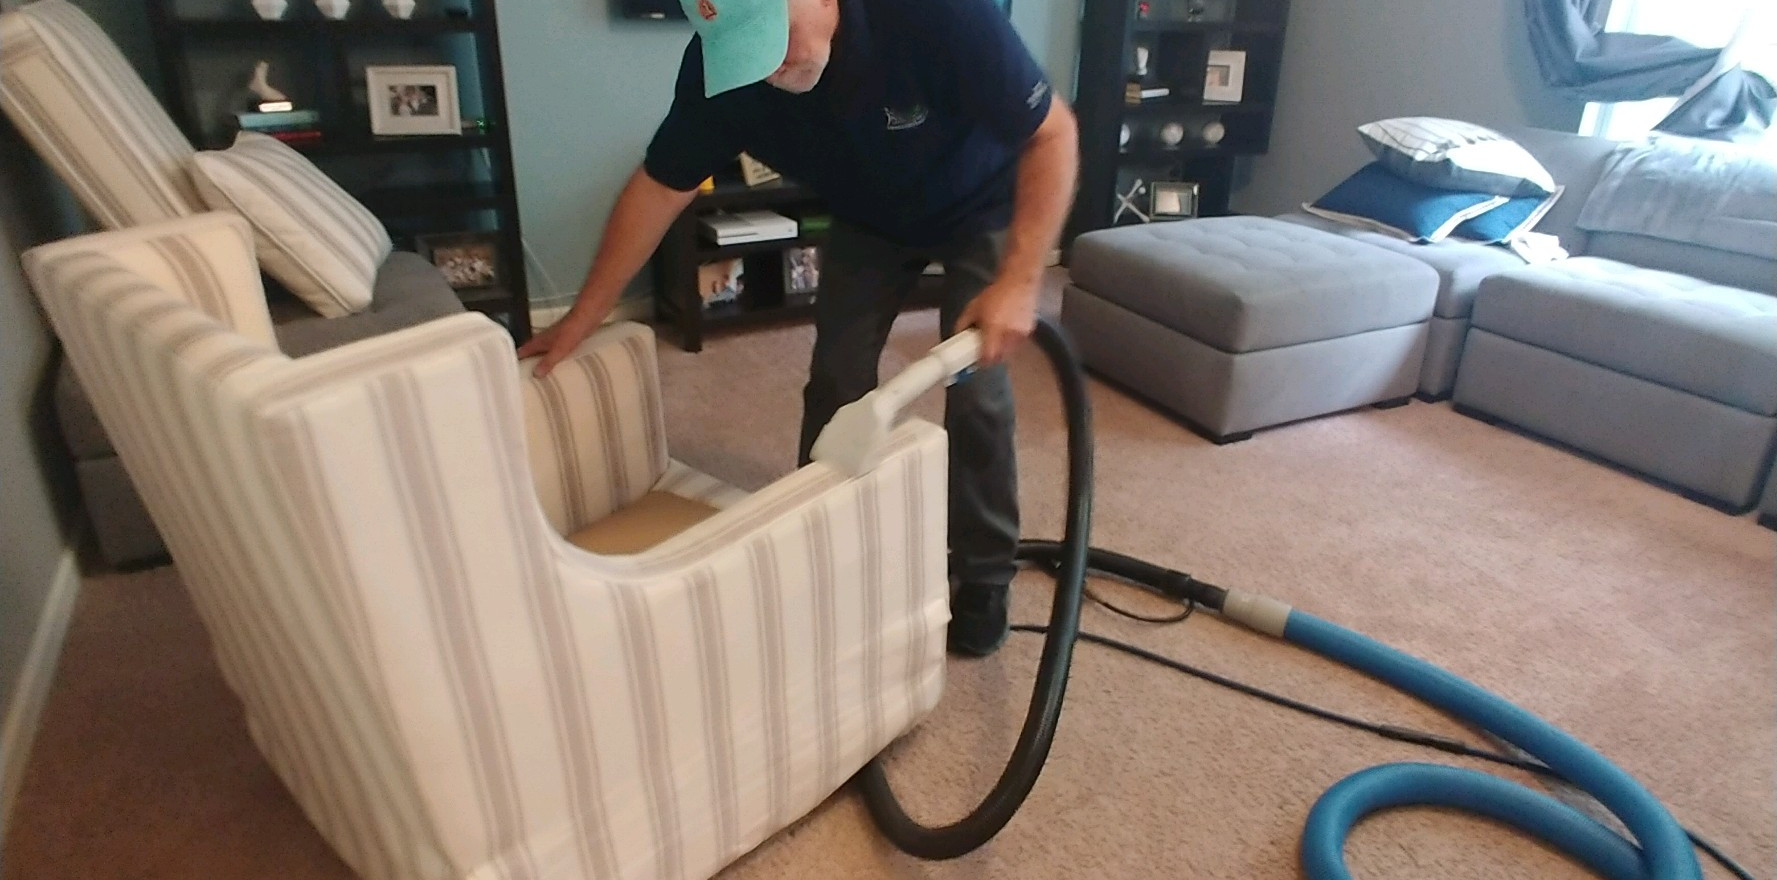 Upholstery Cleaning Services In West Bloomfield, MI